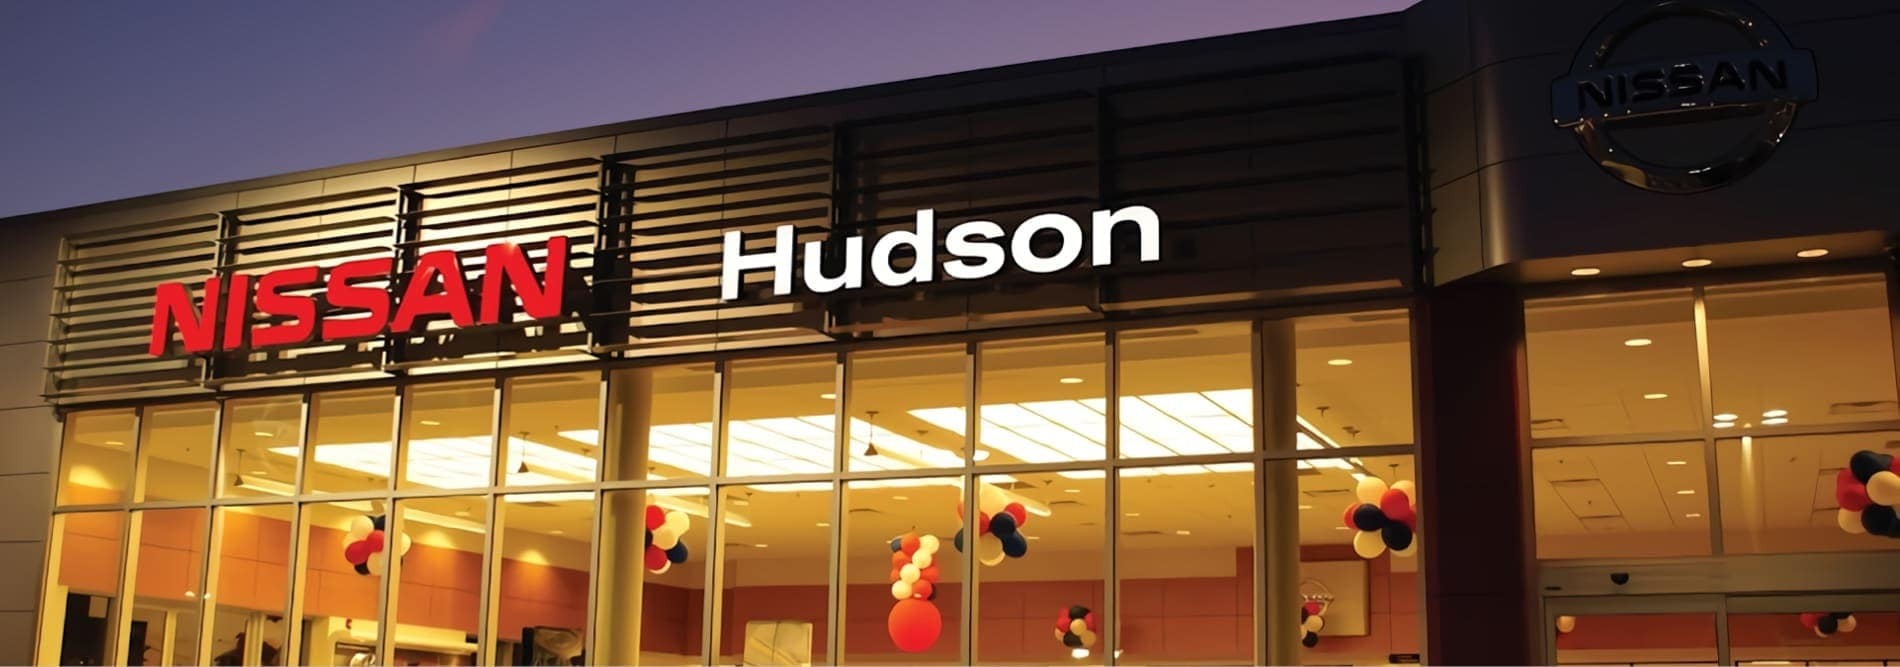 Night shot of Hudson Nissan dealership building